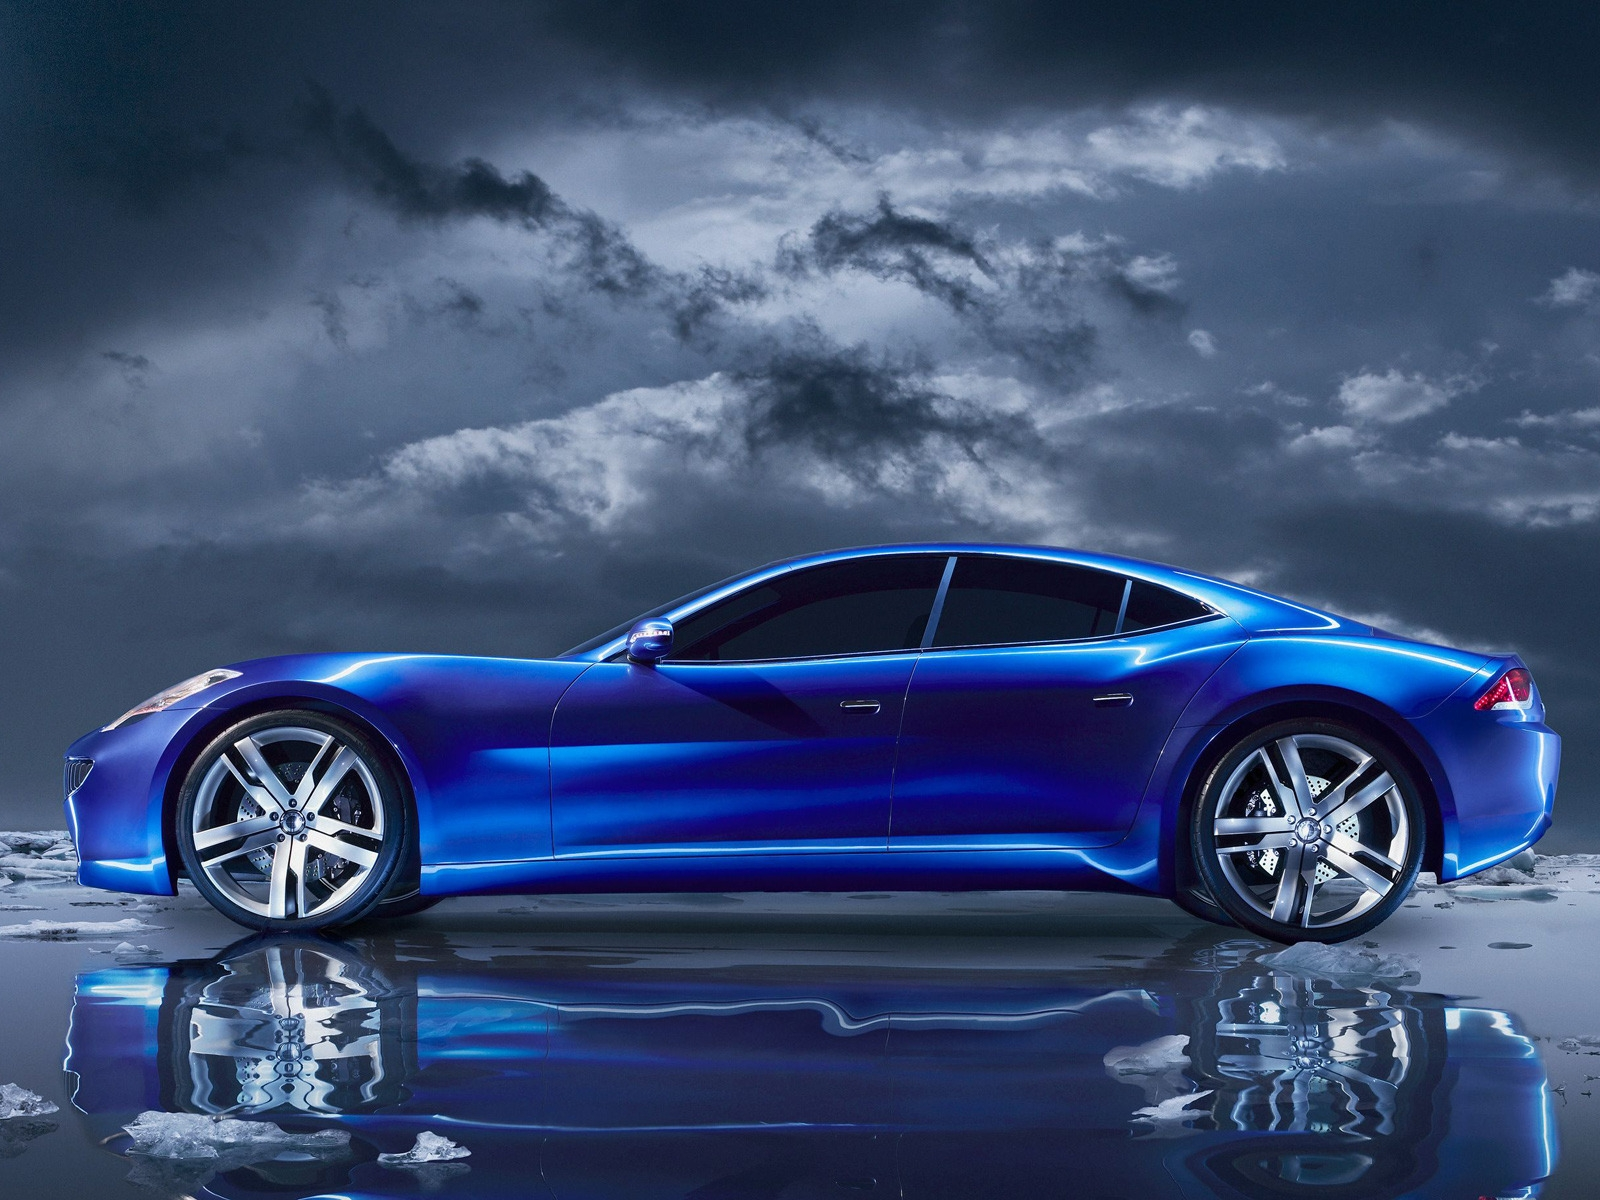 Fisker Karma Concept for 1600 x 1200 resolution